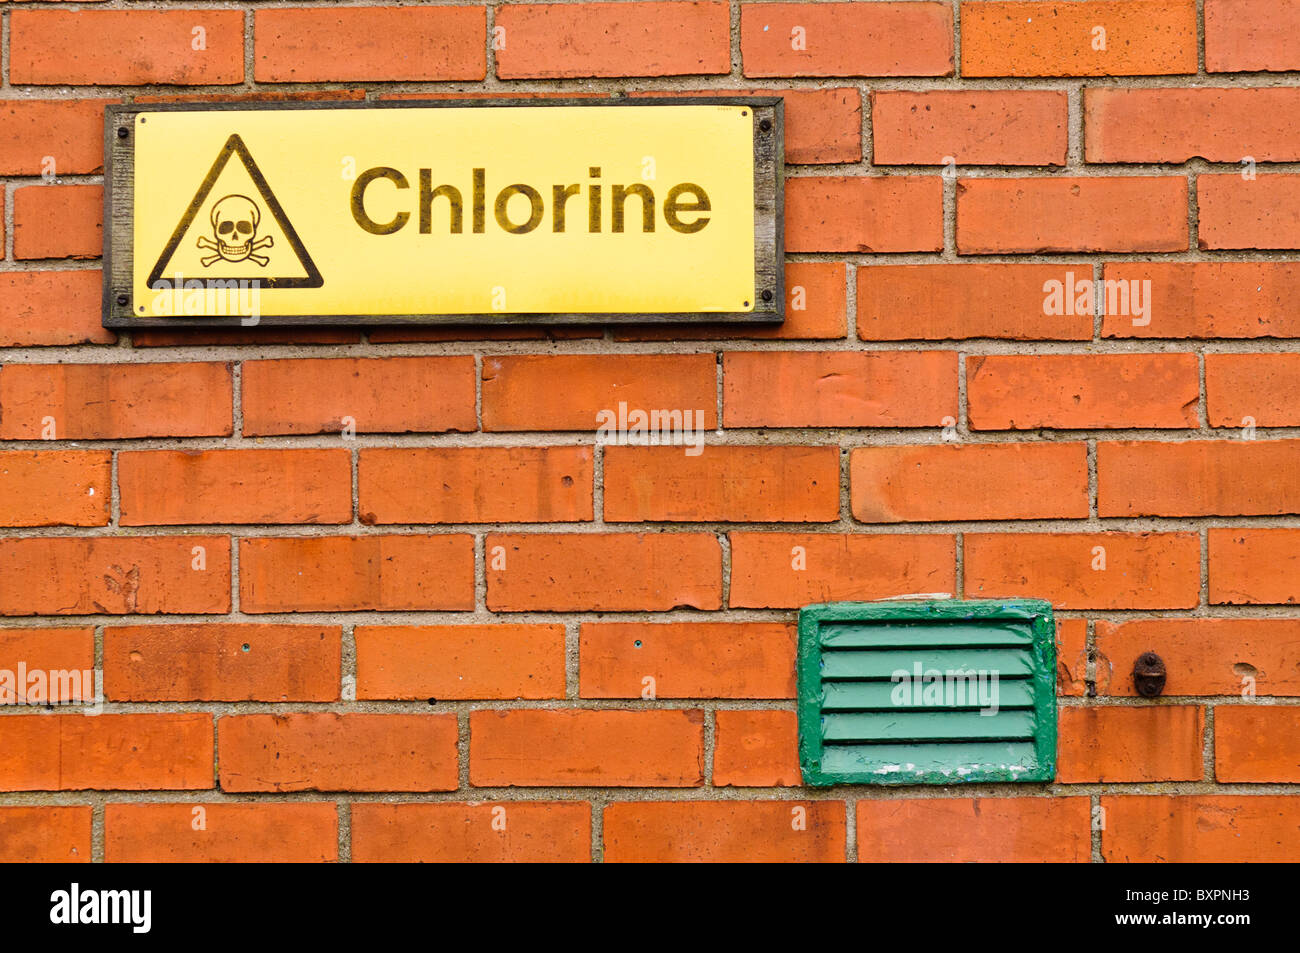 Sign warning about the presence of toxic Chlorine - Stock Image